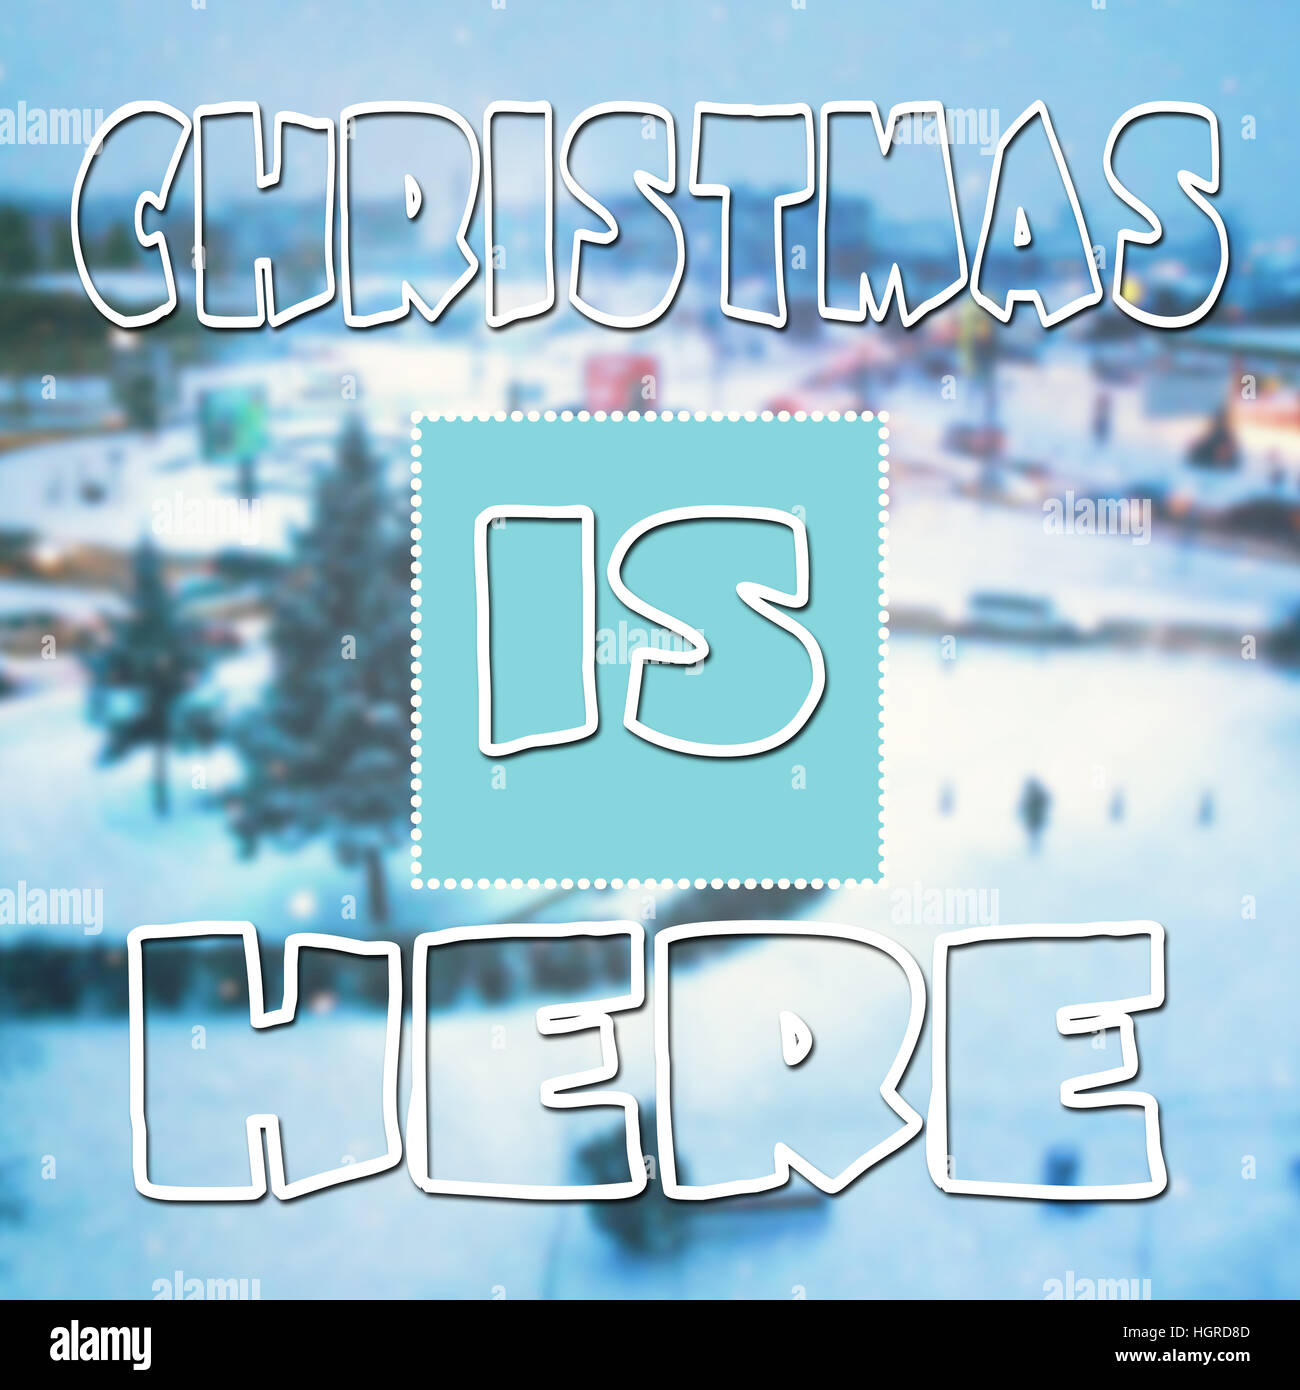 Christmas is here typographic quote on blurred wallpaper with snow - Stock Image